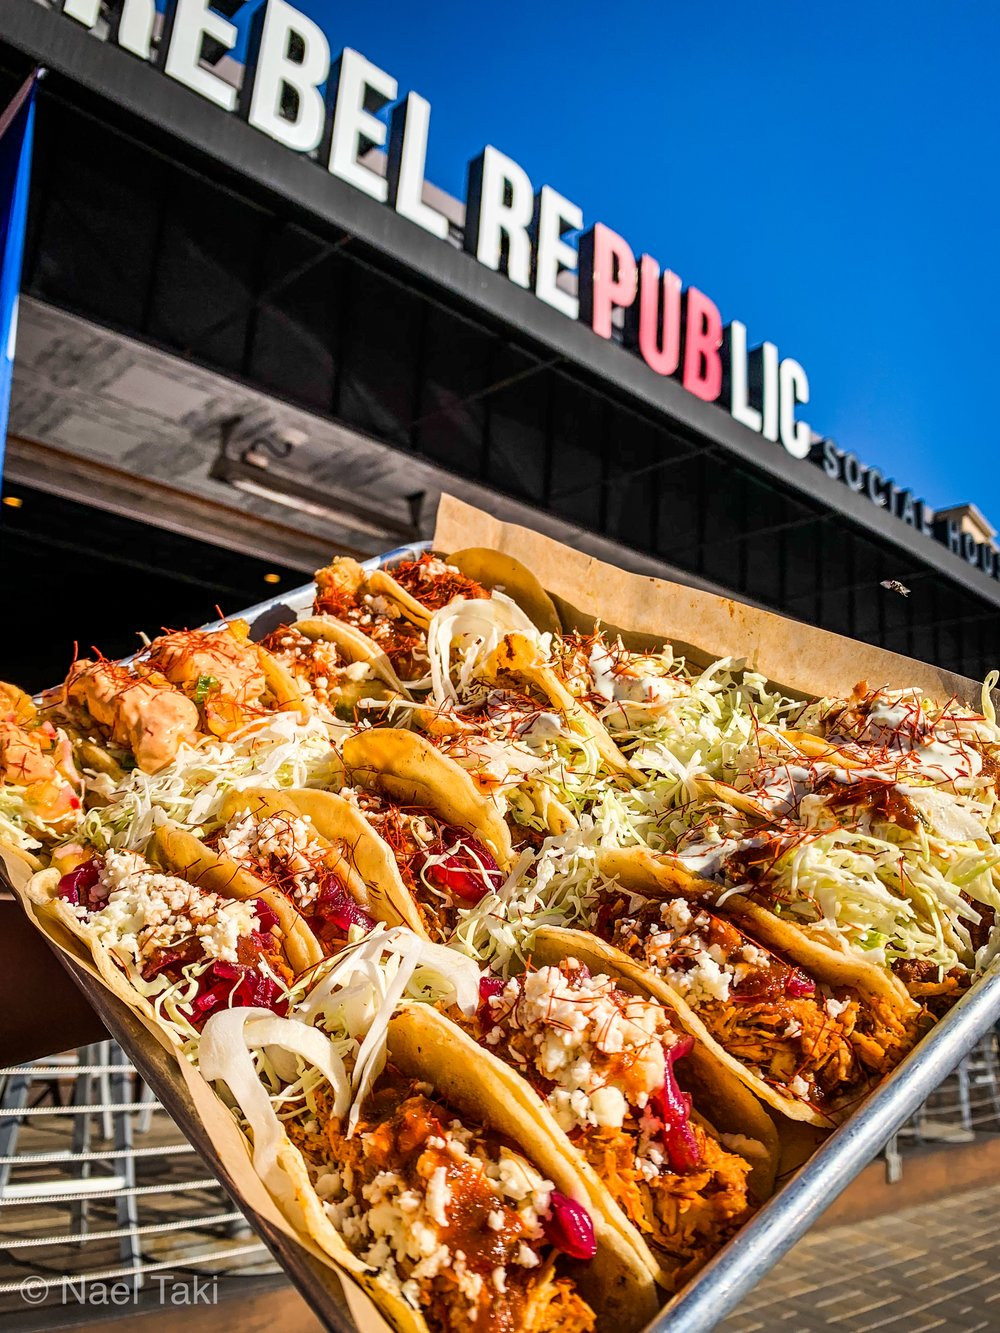 Get your TACO TUESDAYS on at Rebel Republic - 11am - 11pmCARNE ASADA TACOS (3)Guajillio Marinated Asada | Cabbage Slaw | Fire Roasted Salsa | Cilantro Lime CremeFRIED AVOCADO TACOS (3)Deep Fried Mexican Avocados | Volcano Salt | Fire Roasted Salsa | Queso FrescoMAHI MAHI TACOS (3)Pineapple Cilantro Marinated | Cabbage Slaw | Pineapple Radish Salsa | Red Pepper CremeACHIOTE CHICKEN TACOS (3)Achiote Marinate Chicken | Pickled Red Onions | Fire Roasted Salsa | Queso FrescoCHIPS & SALSATajin Spiced Chips | Fire Roasted Salsa | Queso Blanco DipDESSERTChurros & Mexican ChocolateREBEL MICHELADALime | Volcano Salt | Mexican Beer | Social Popsicle